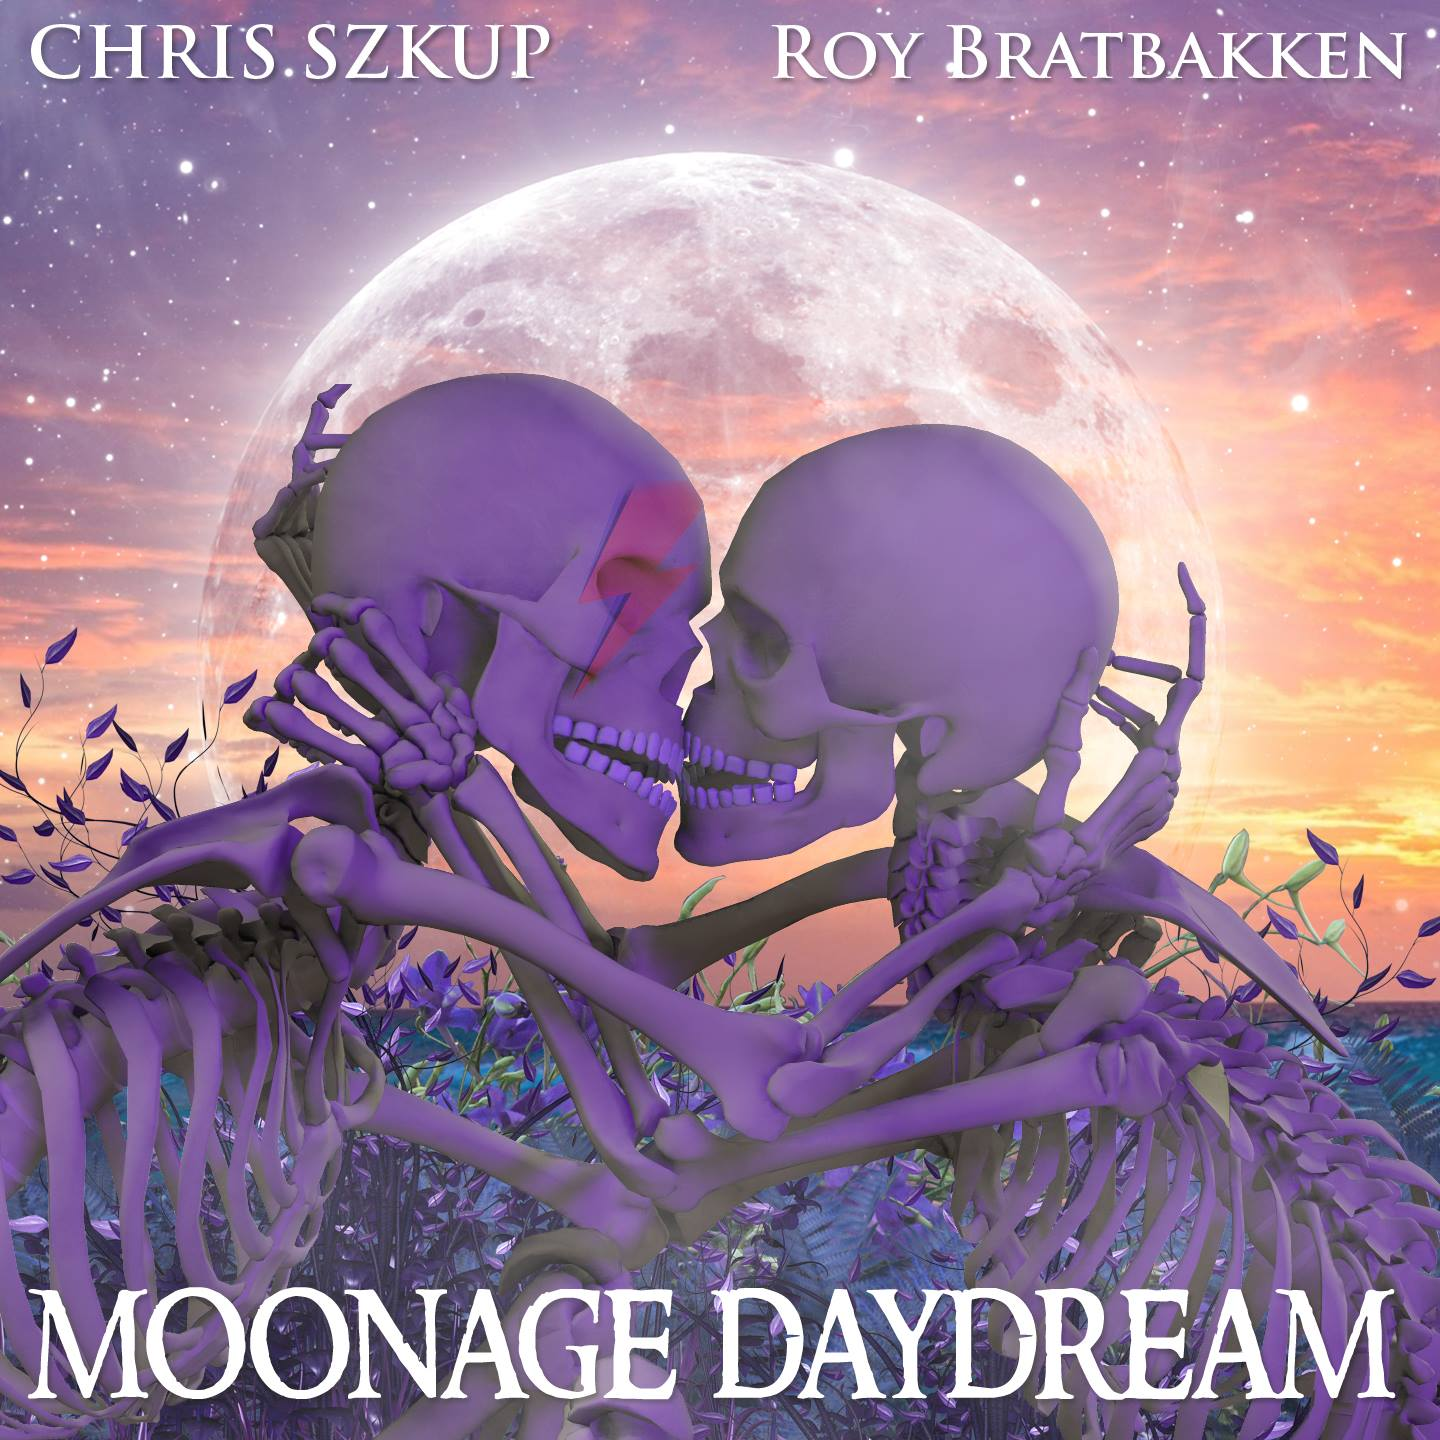 Moonage Daydream - Roy Bratbakken and Chris Szkup